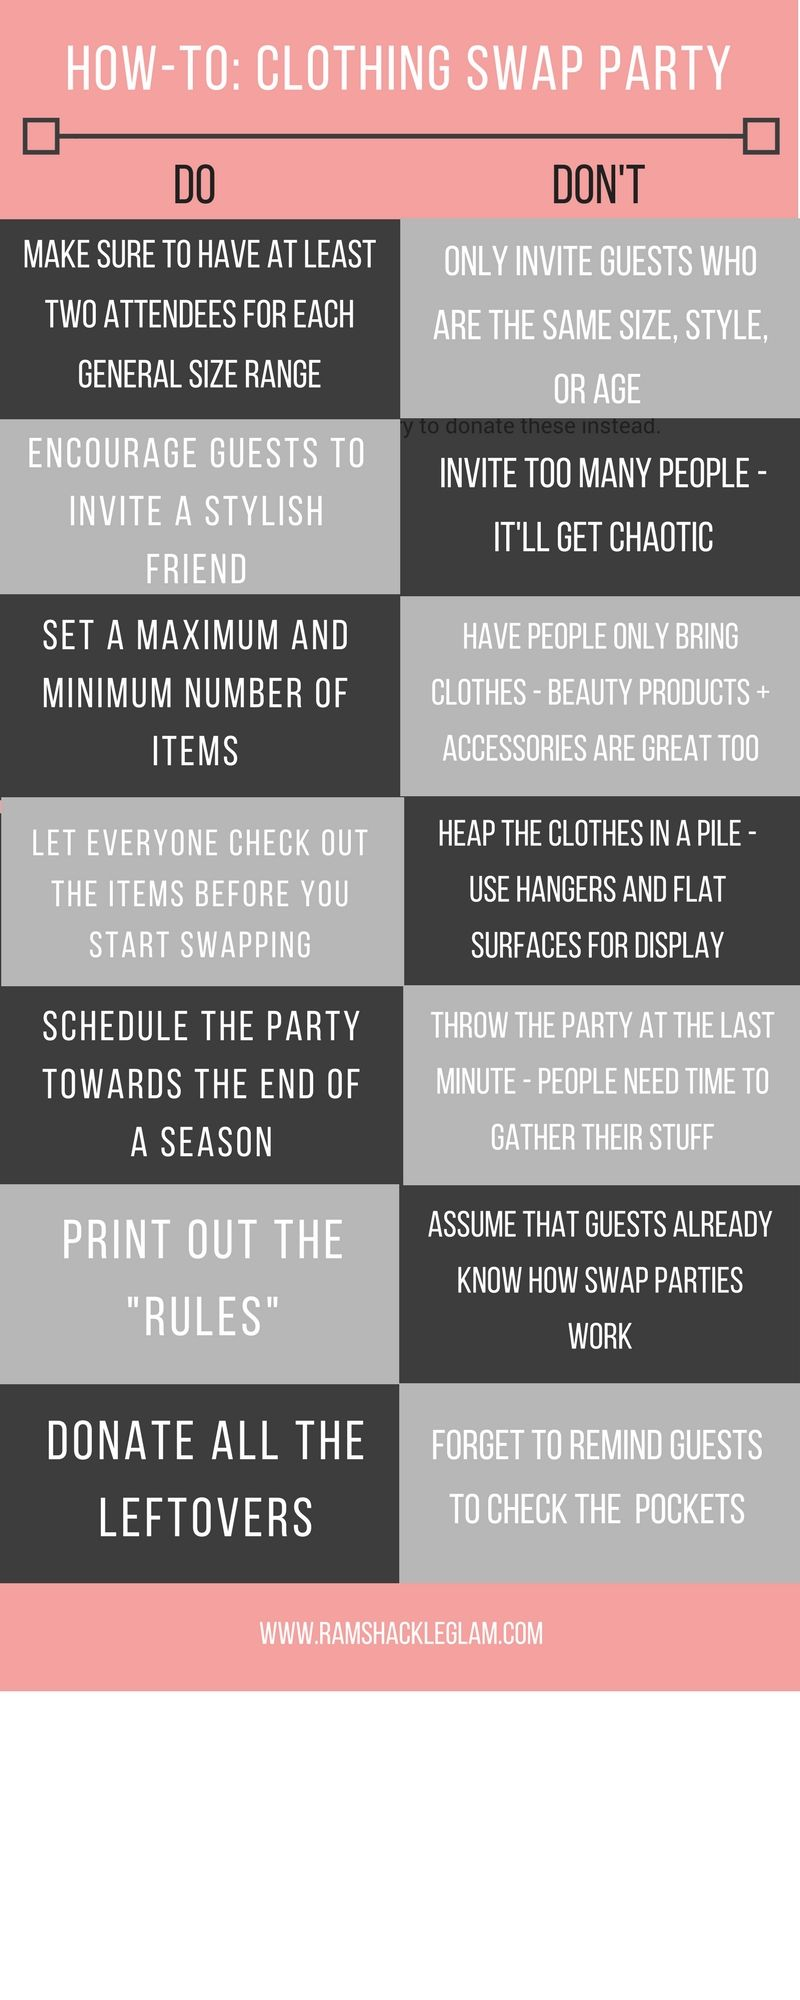 Tips For Hosting A Clothing Swap Party   Ramshackle Glam